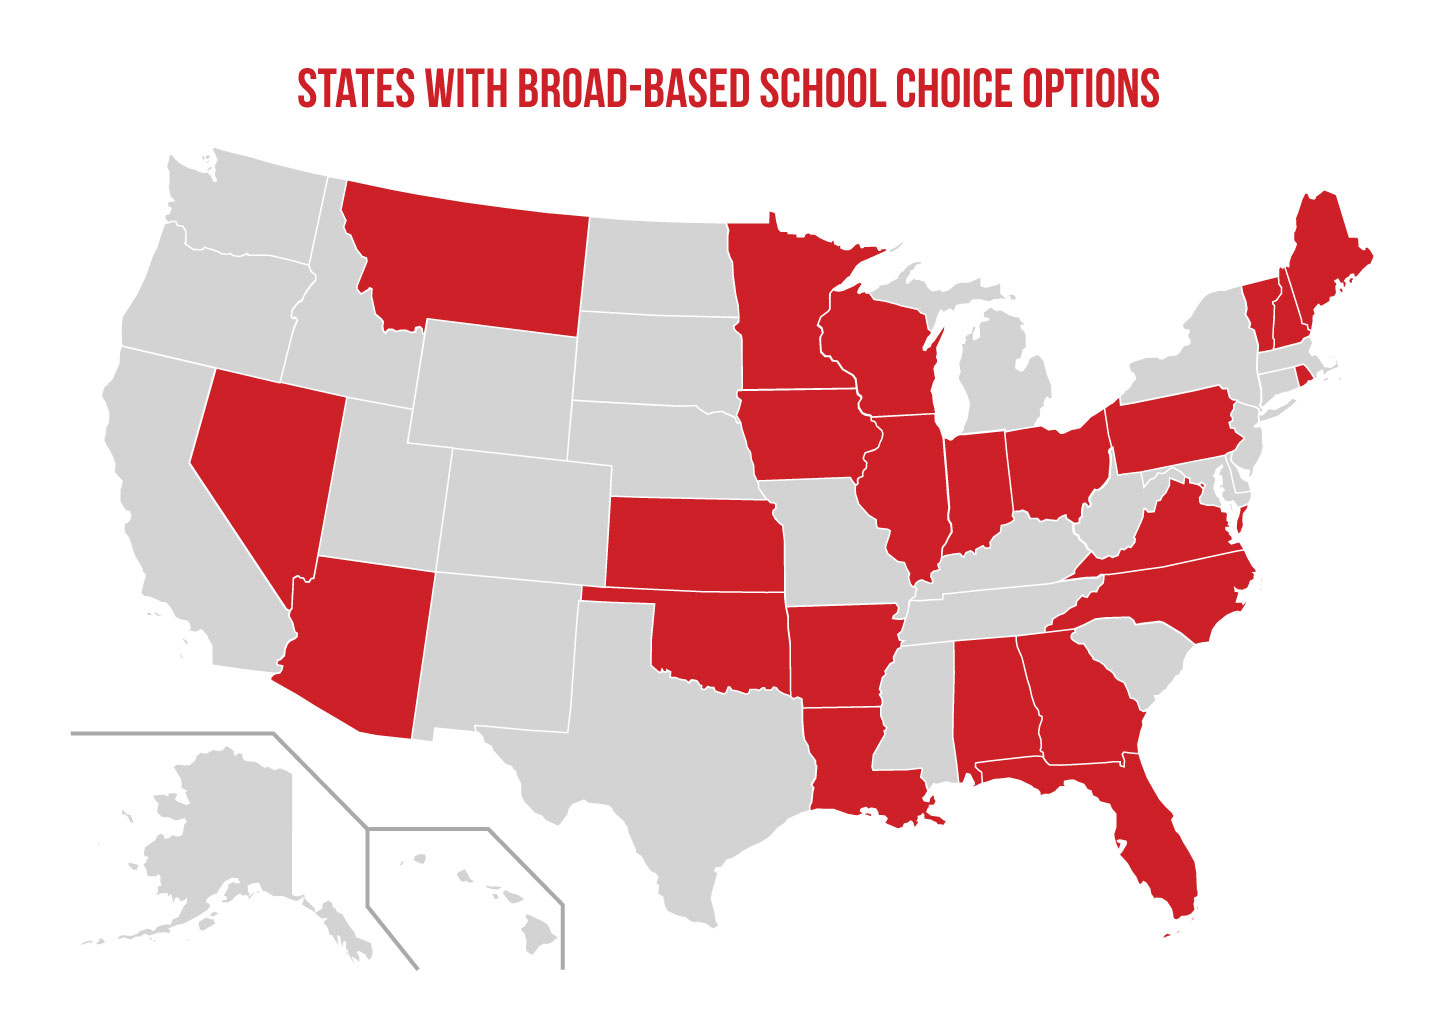 The choice for states The choice for states new images